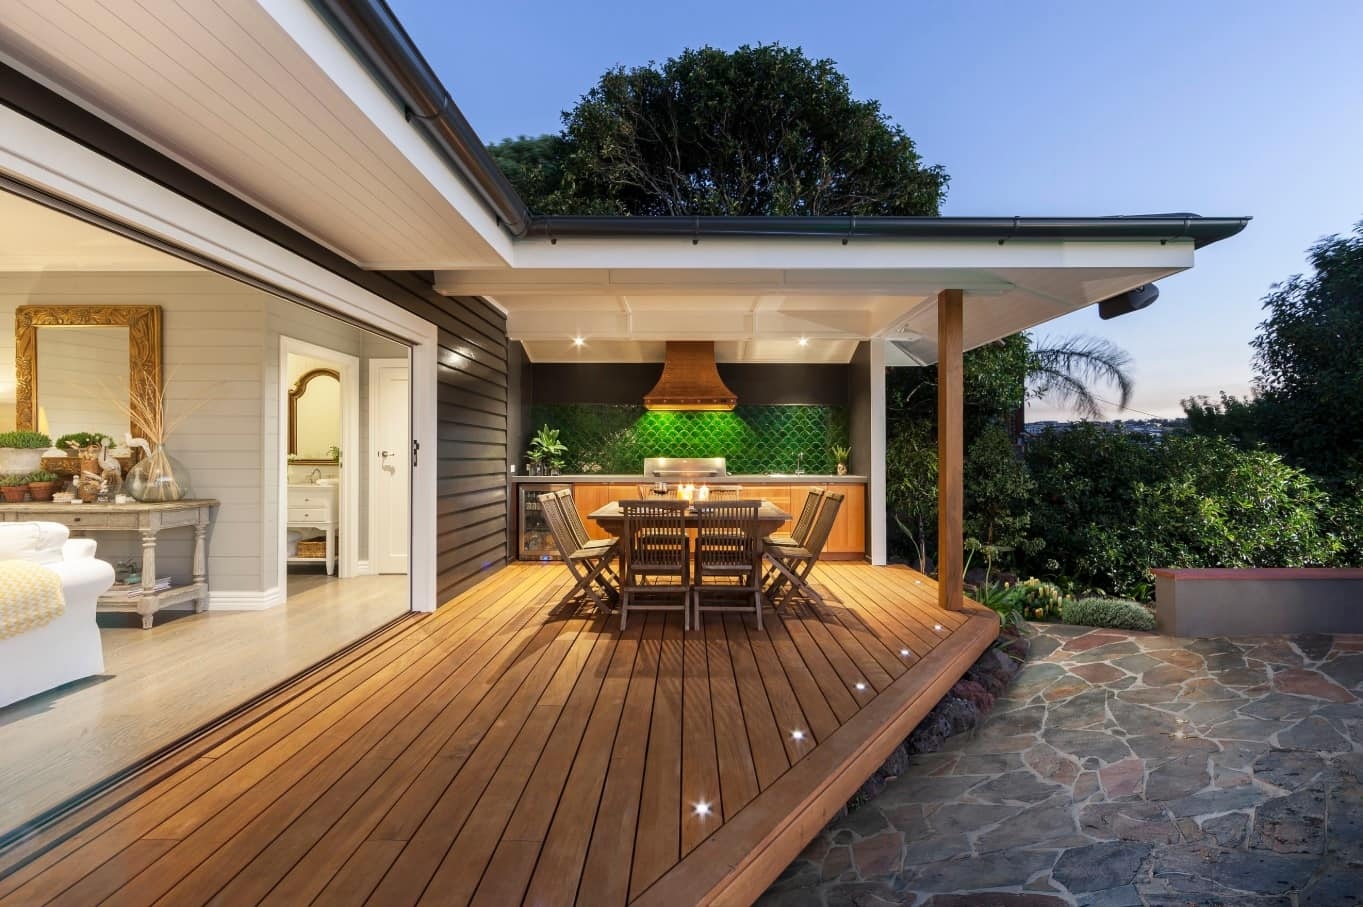 5 Unique Deck Ideas to Make the Most of Your Small Yard. Modern refined design of the backyard deck with built-in lighting and dining zone